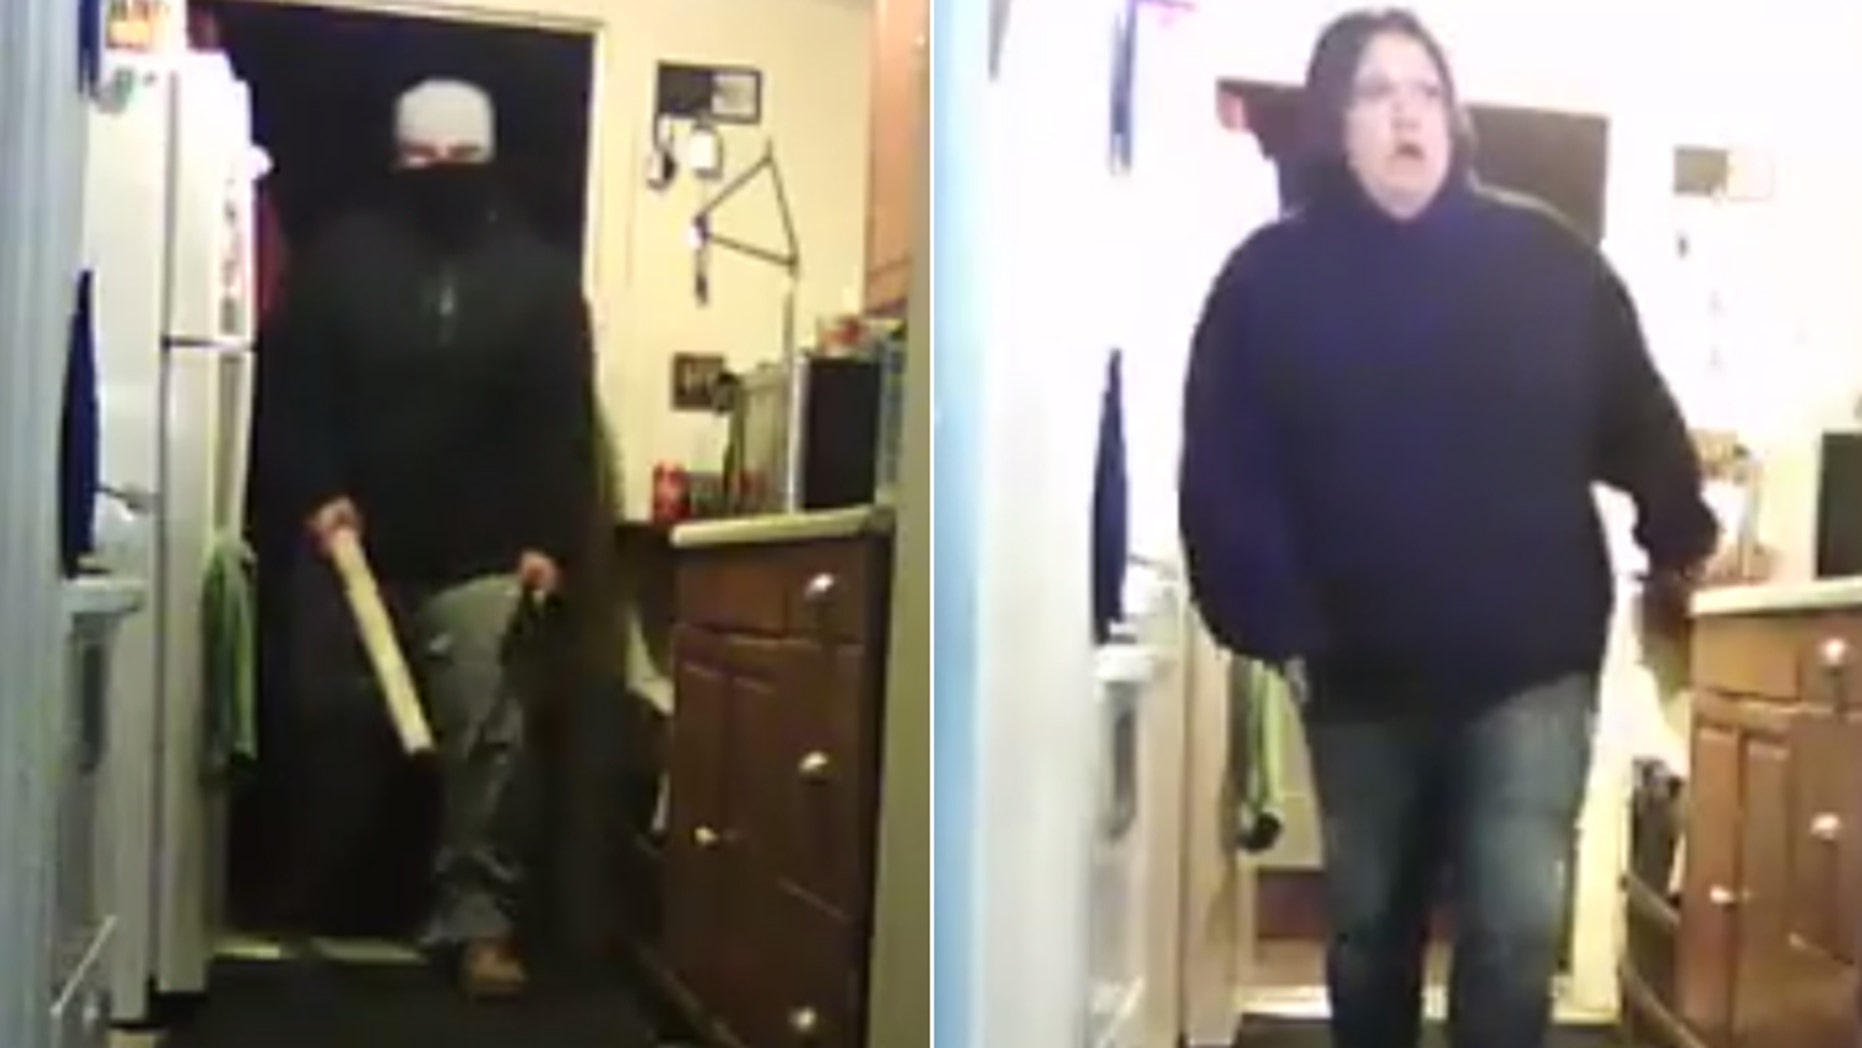 Police in Littlestown, Pa., are searching for two people suspected of breaking into a home and then attacking a man with a meat cleaver.